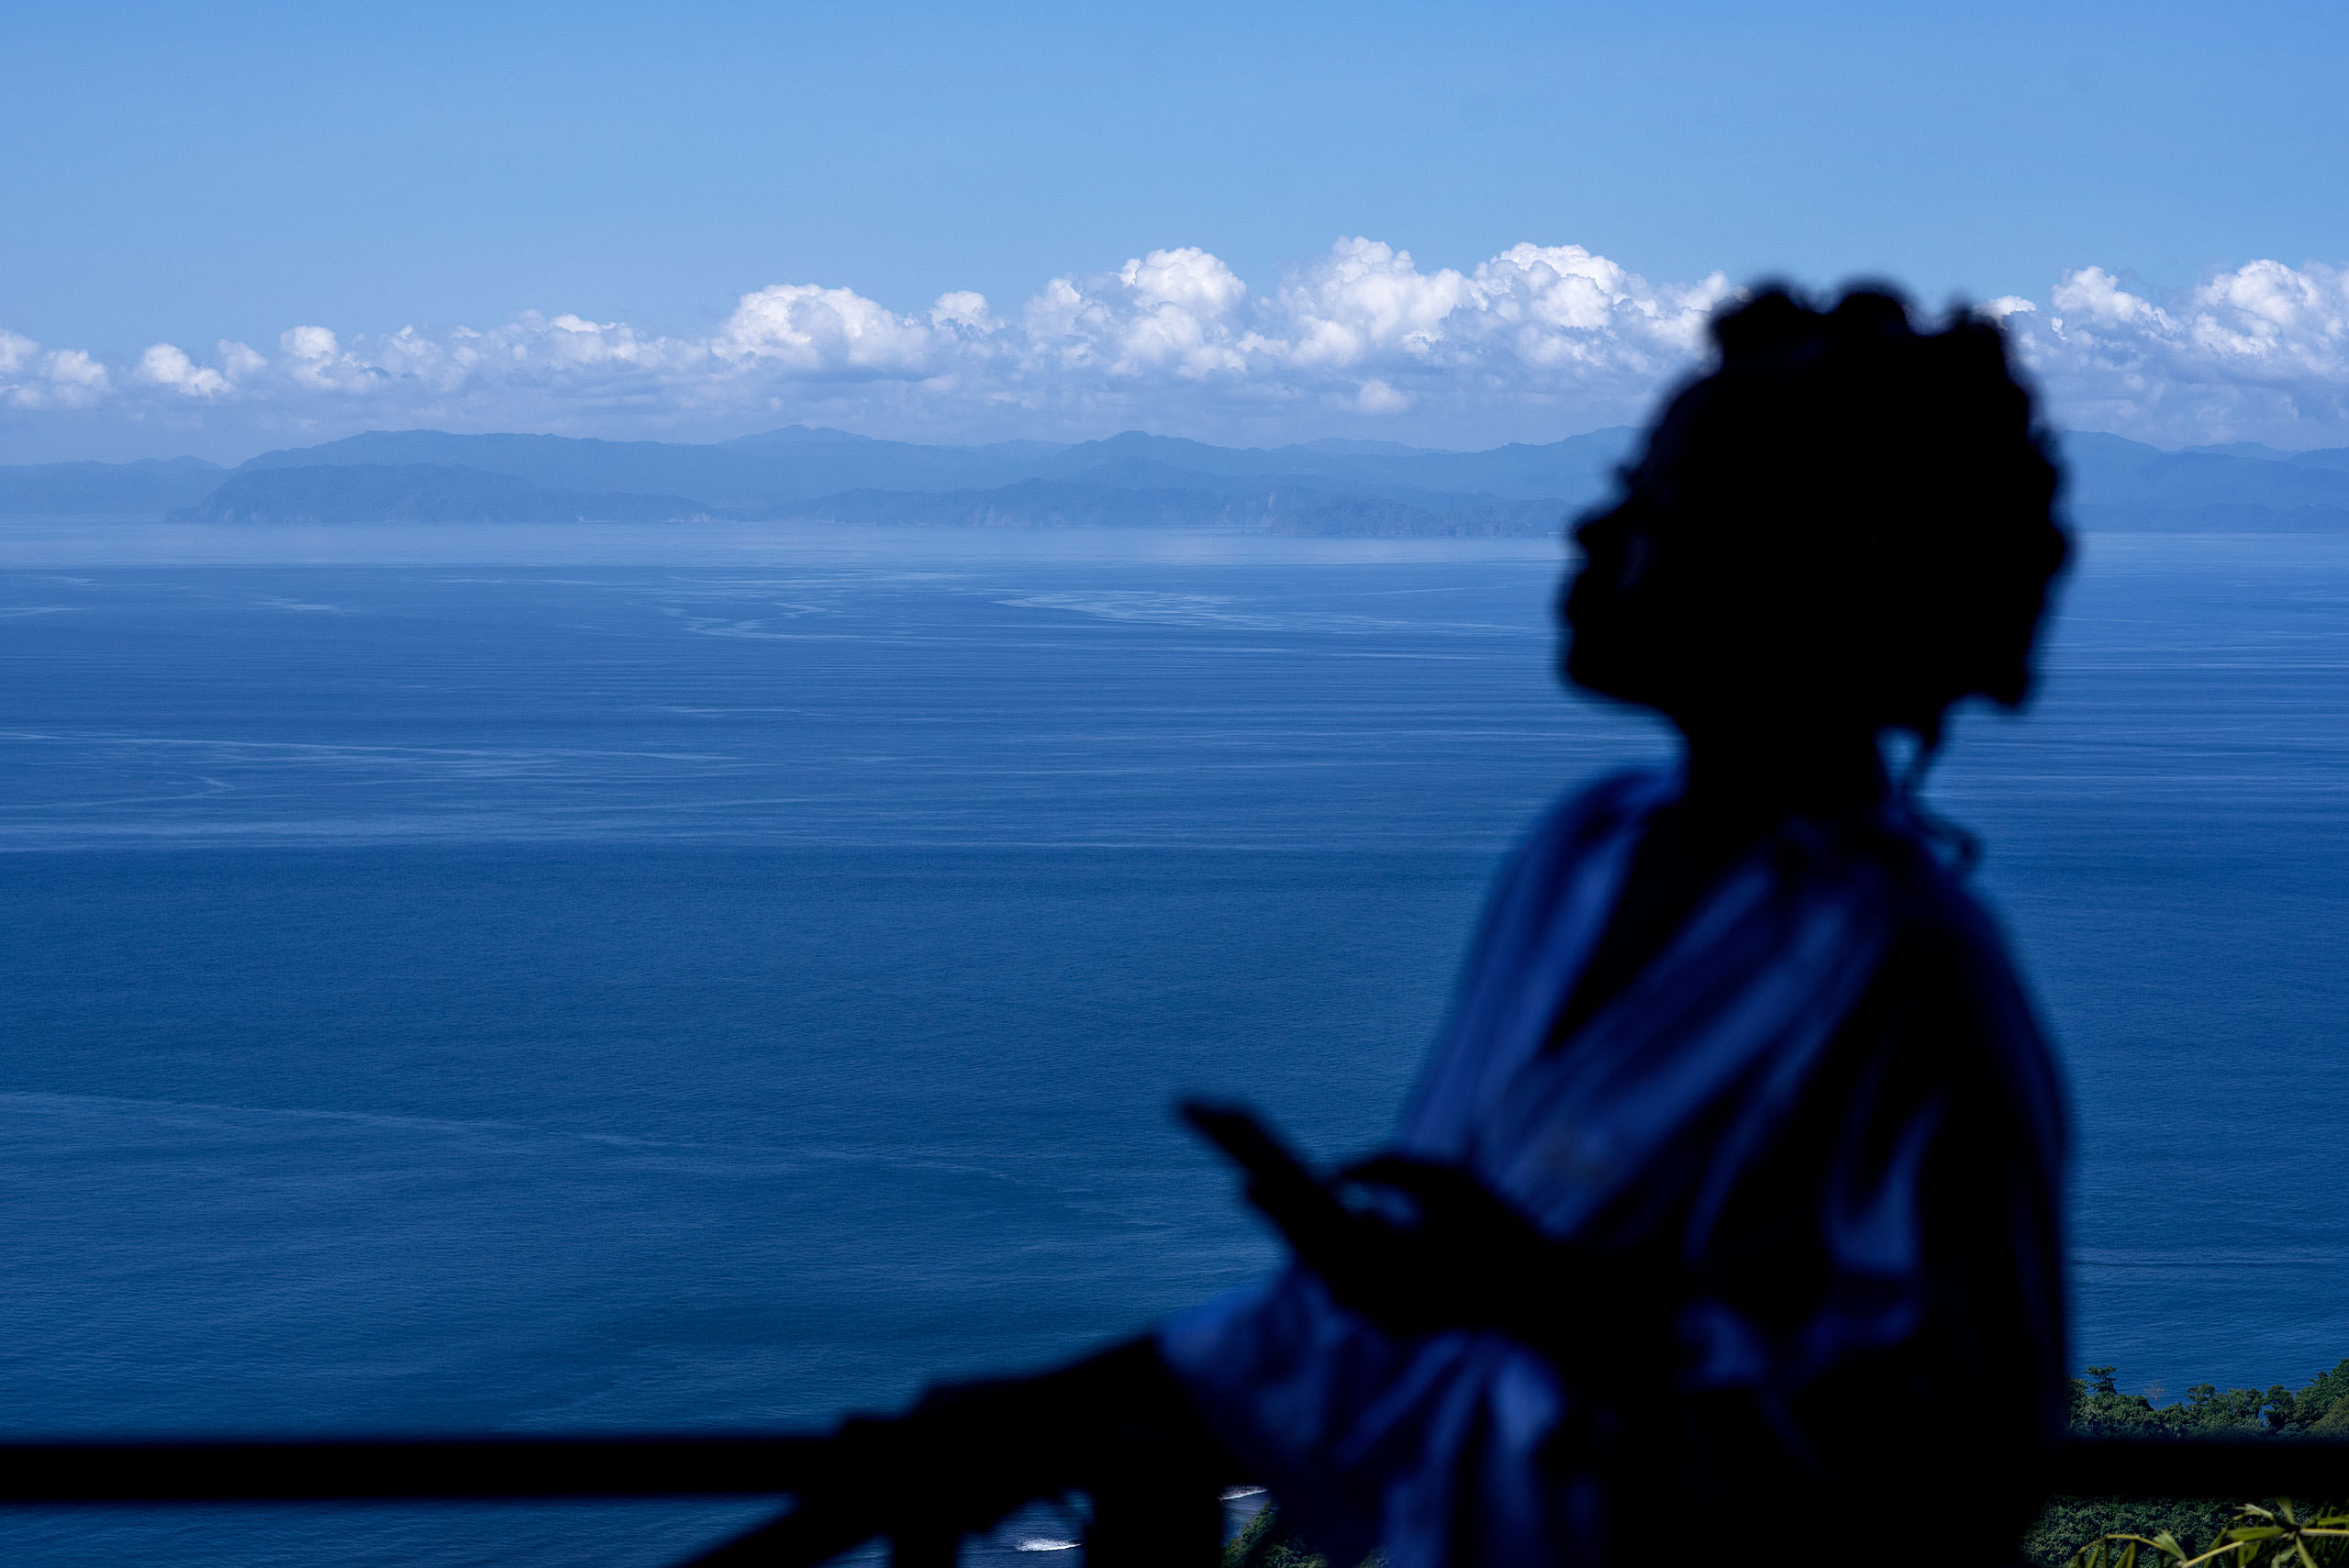 a women standing on a balcony overlooking the ocean at Zephyr Palace Destination Wedding in Costa Rica by Sean LeBlanc